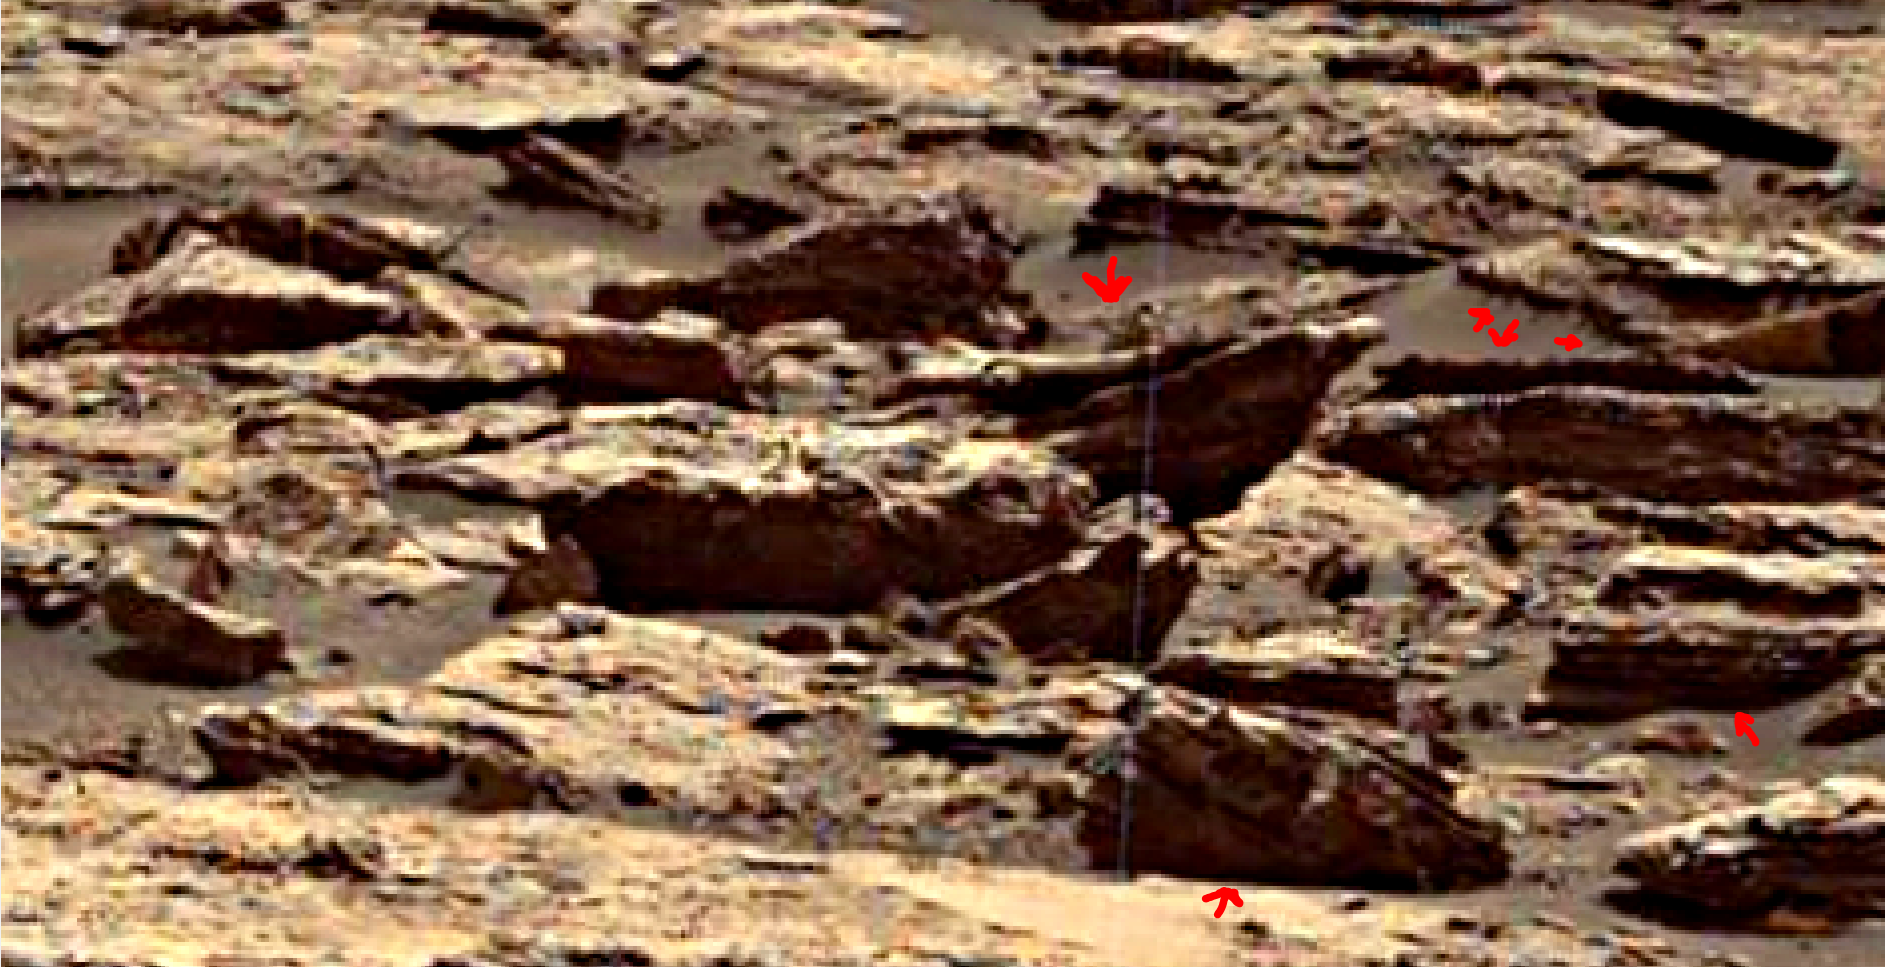 mars-sol-1489-anomaly-artifacts-1-was-life-on-mars